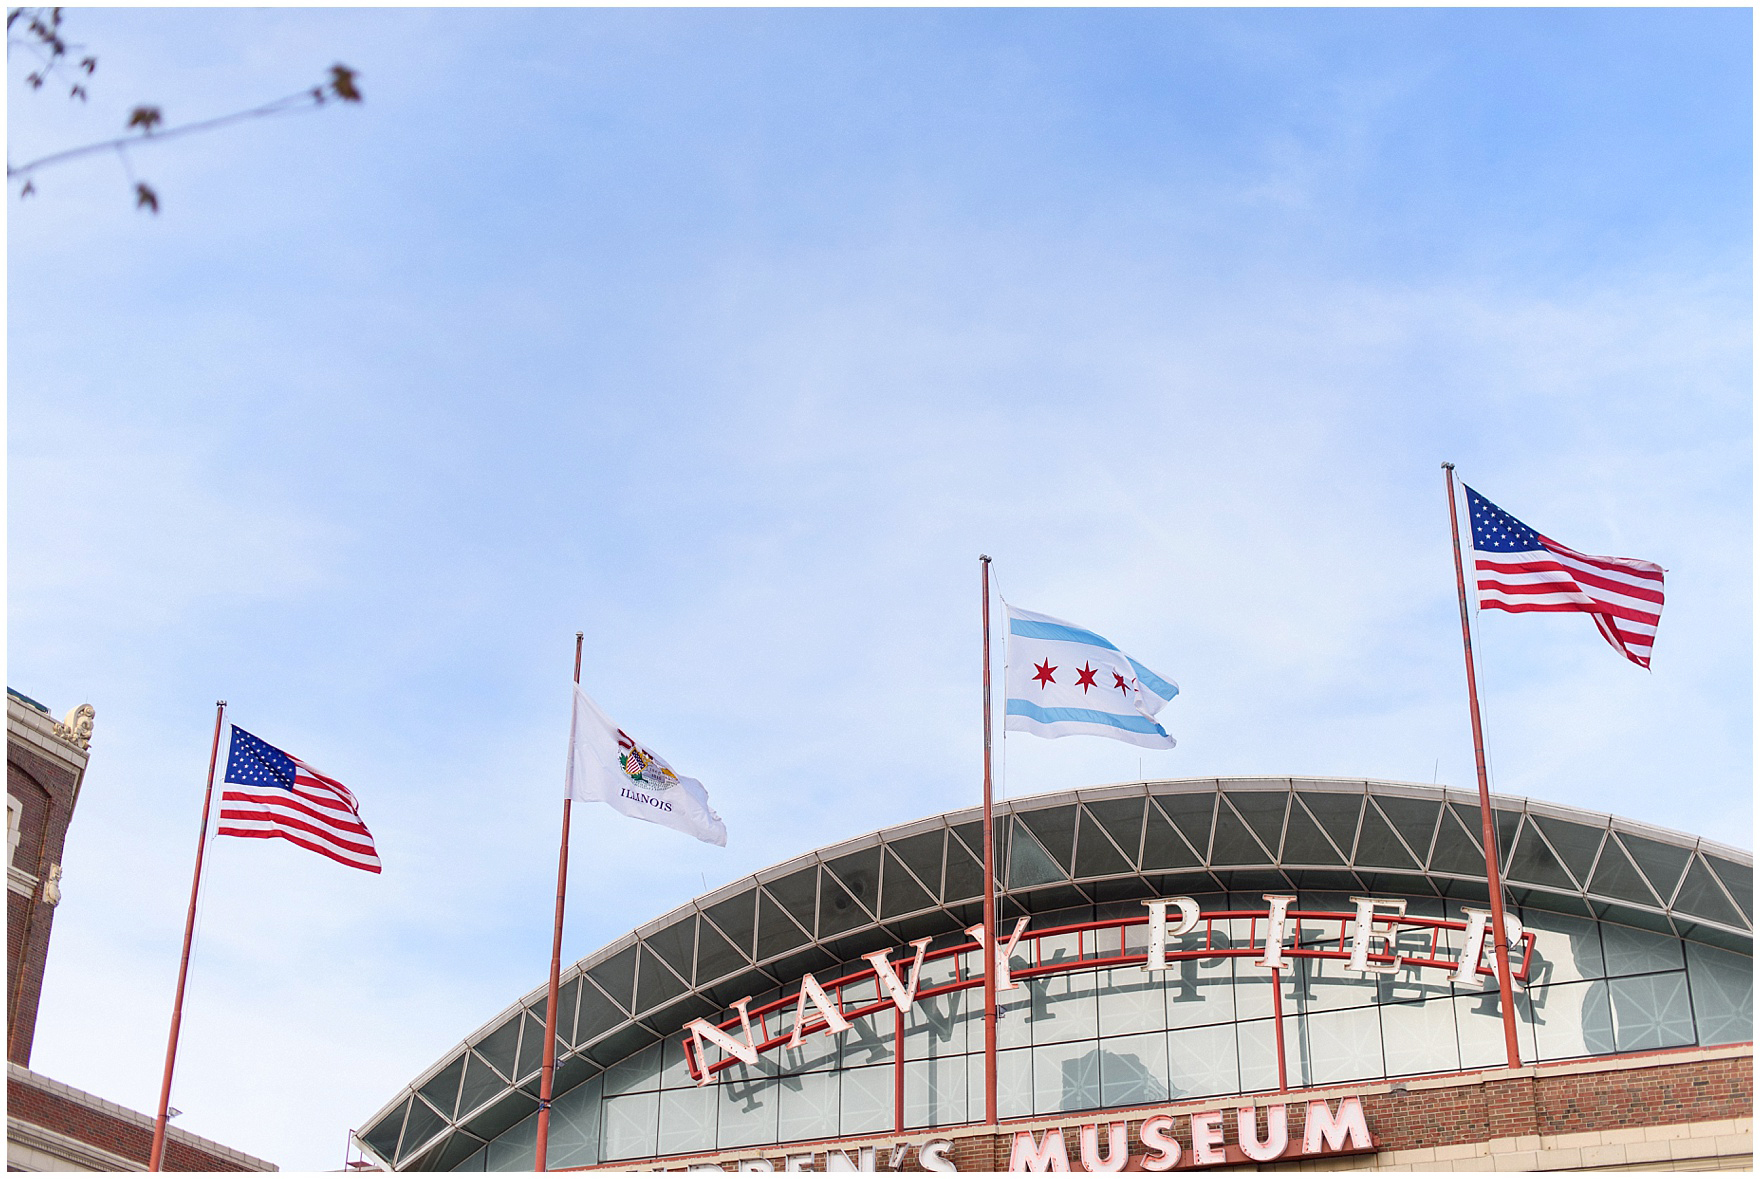 Exterior of Navy Pier during a Chicago Navy Pier engagement photography session.